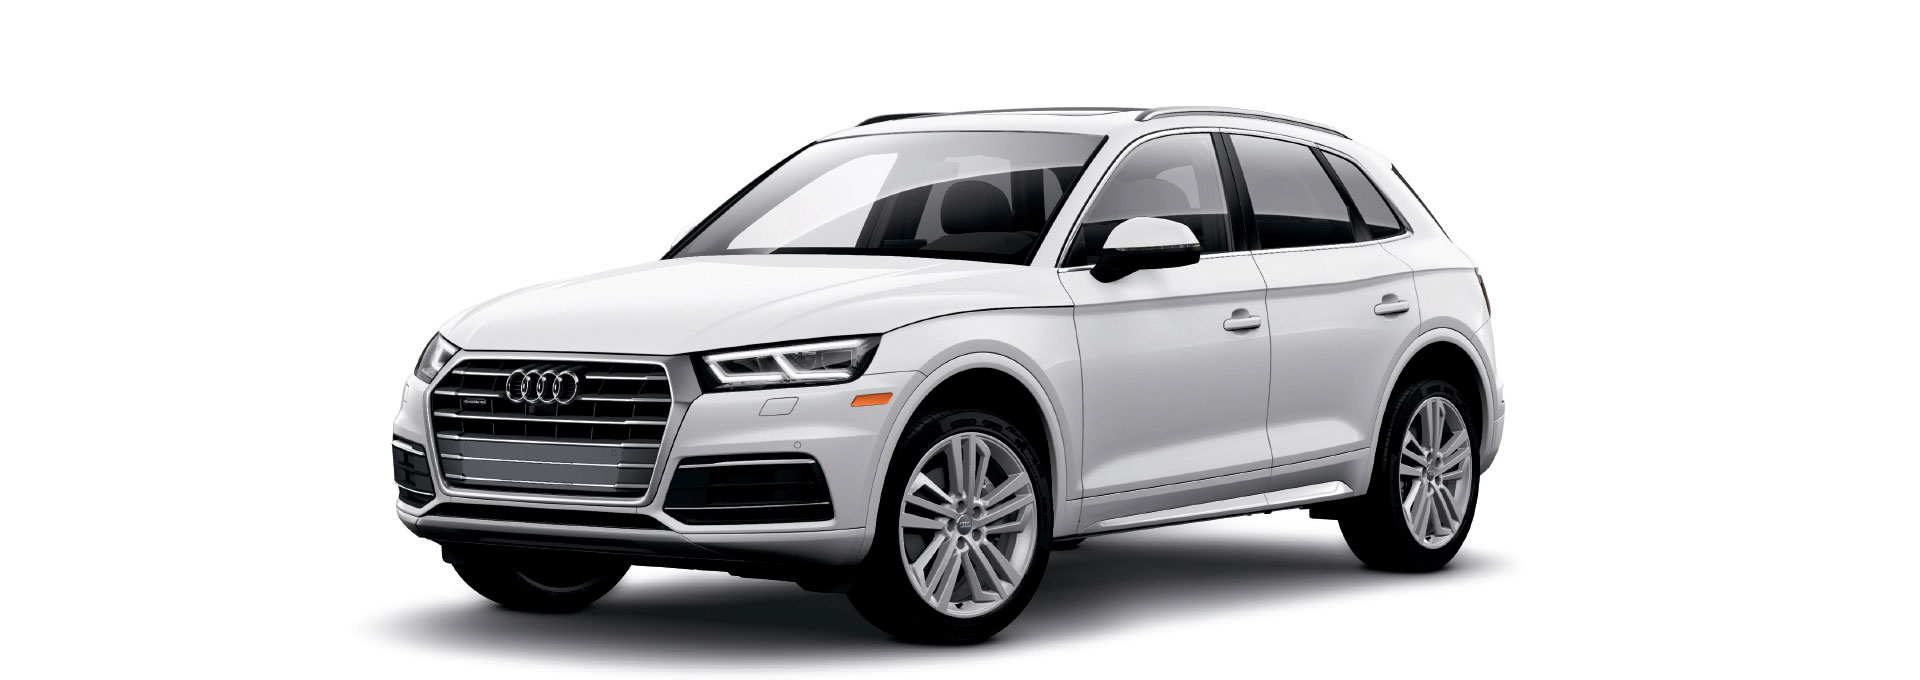 Audi Q5 2017 2 0 Tfsi S Line In Bahrain New Car Prices